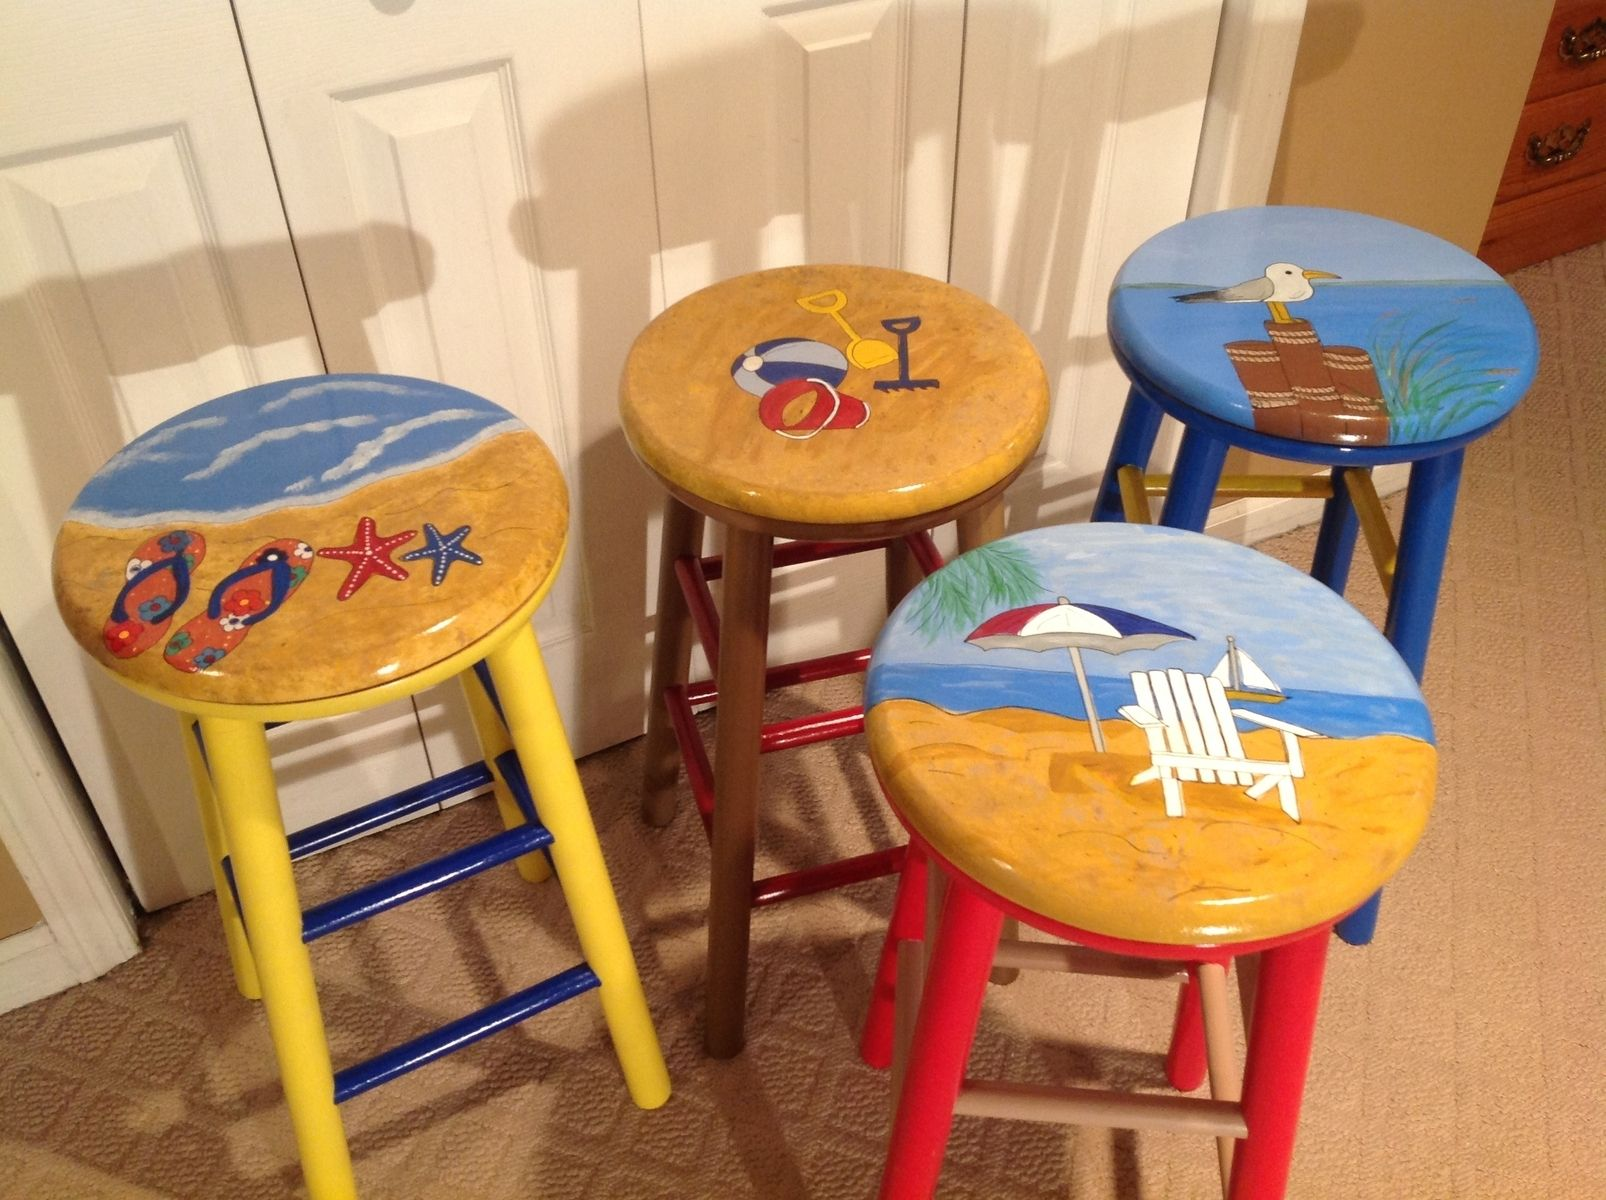 Painted Kitchen Chairs Of Handmade Custom Designed And Hand Painted 24 By Michele